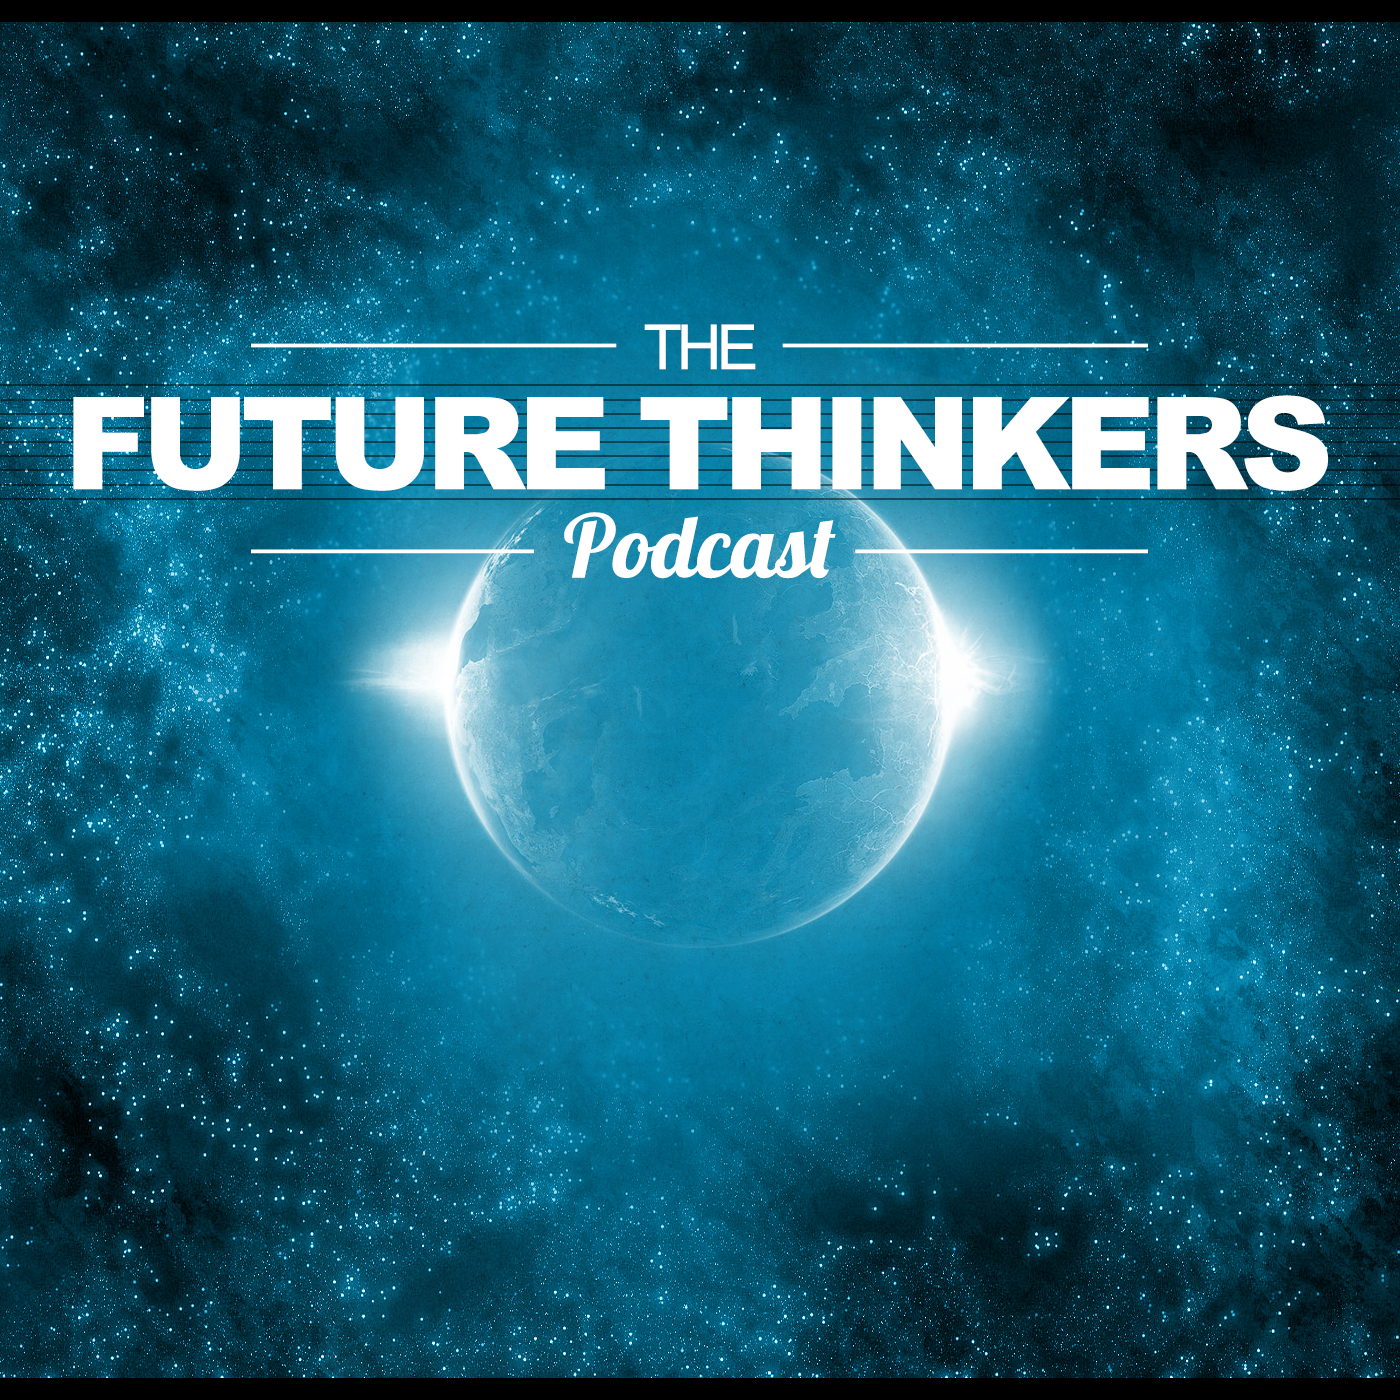 Future Thinkers